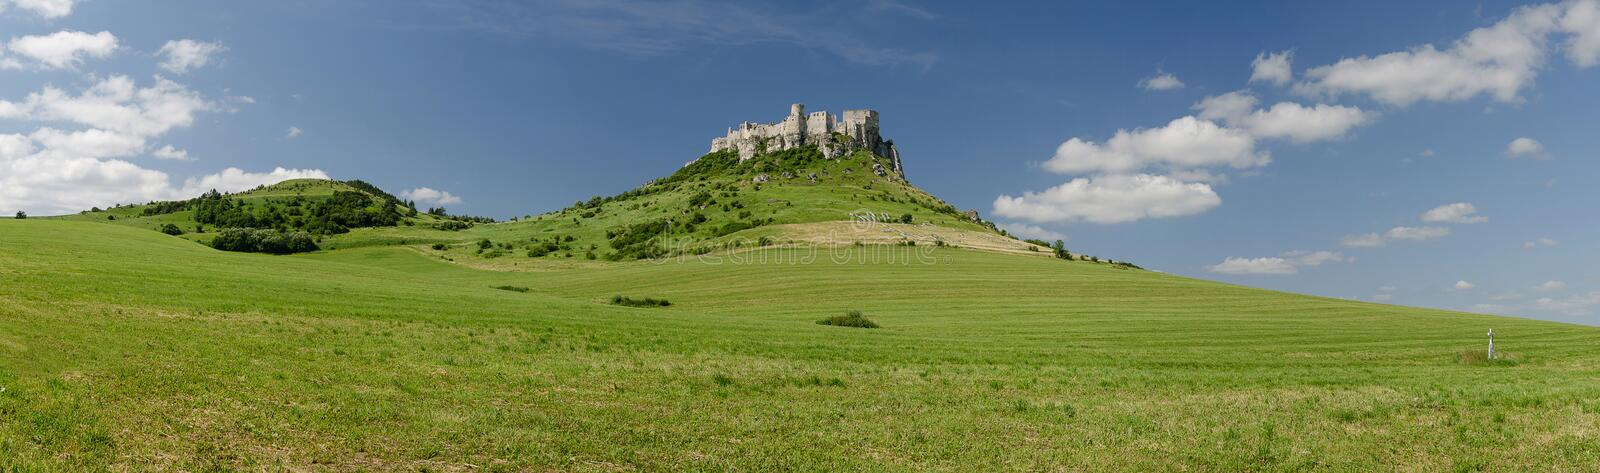 Panoramic picture of Spis castle, Slovakia stock photos